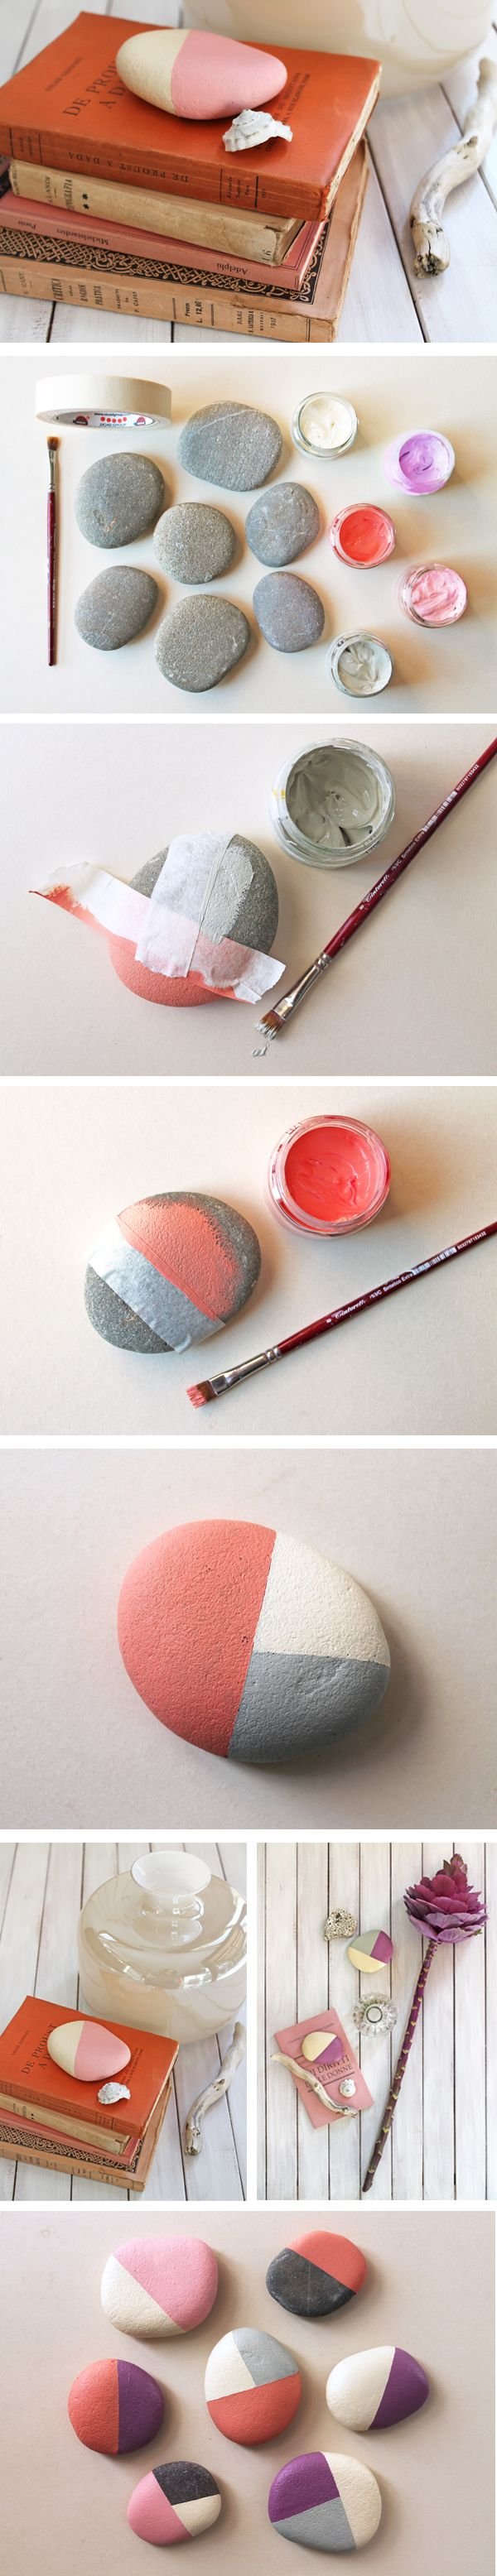 DIY painted stones_02